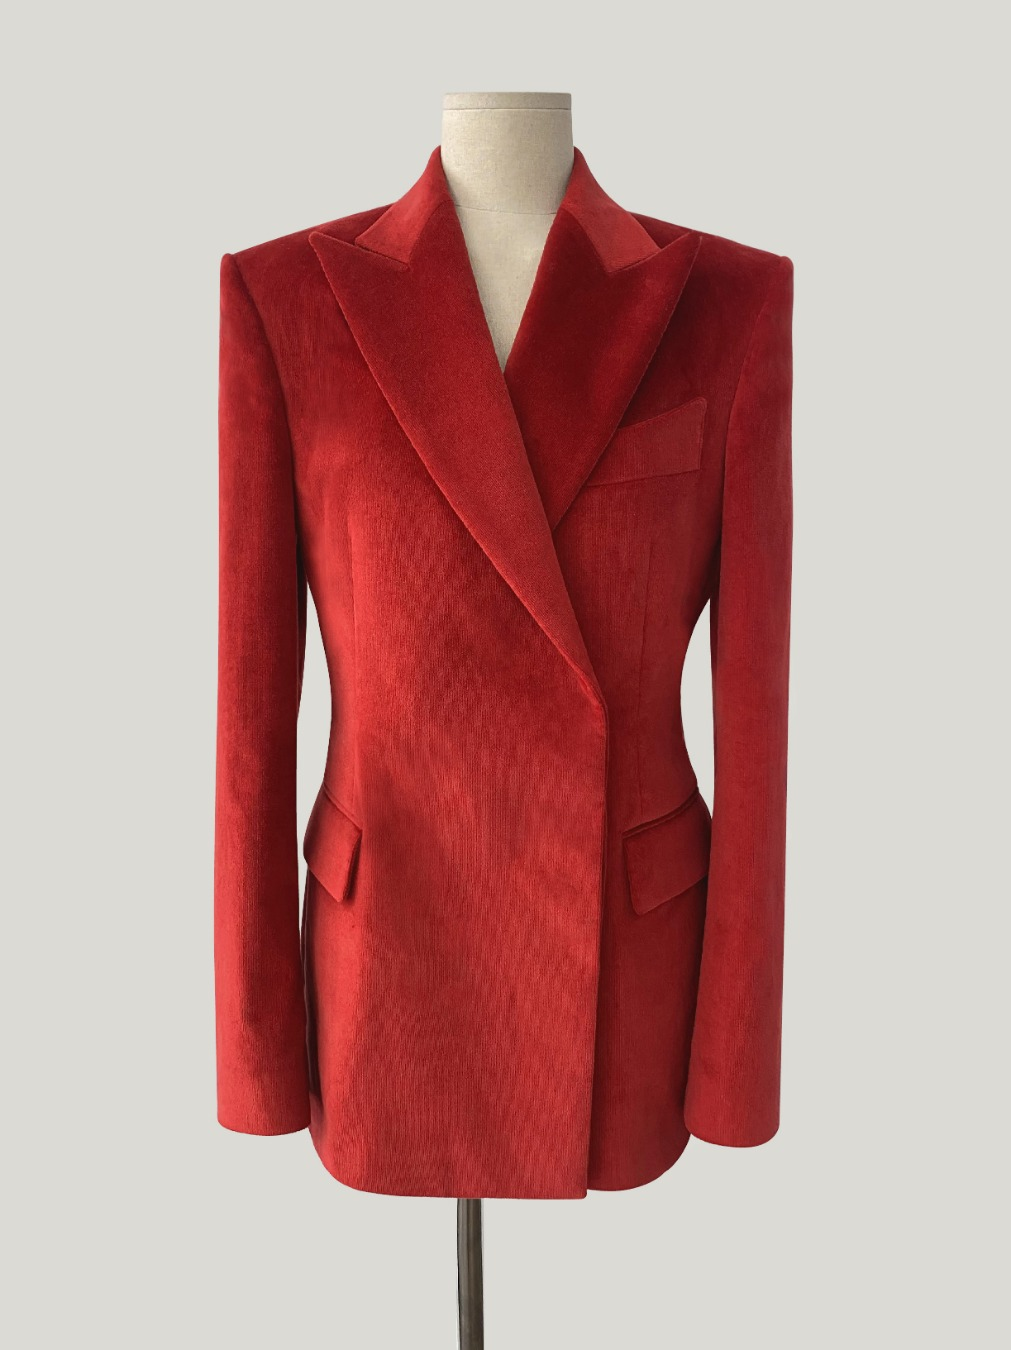 RED CORDUROY VELVET DOUBLE BREASTED HIDDEN-BUTTON JACKET